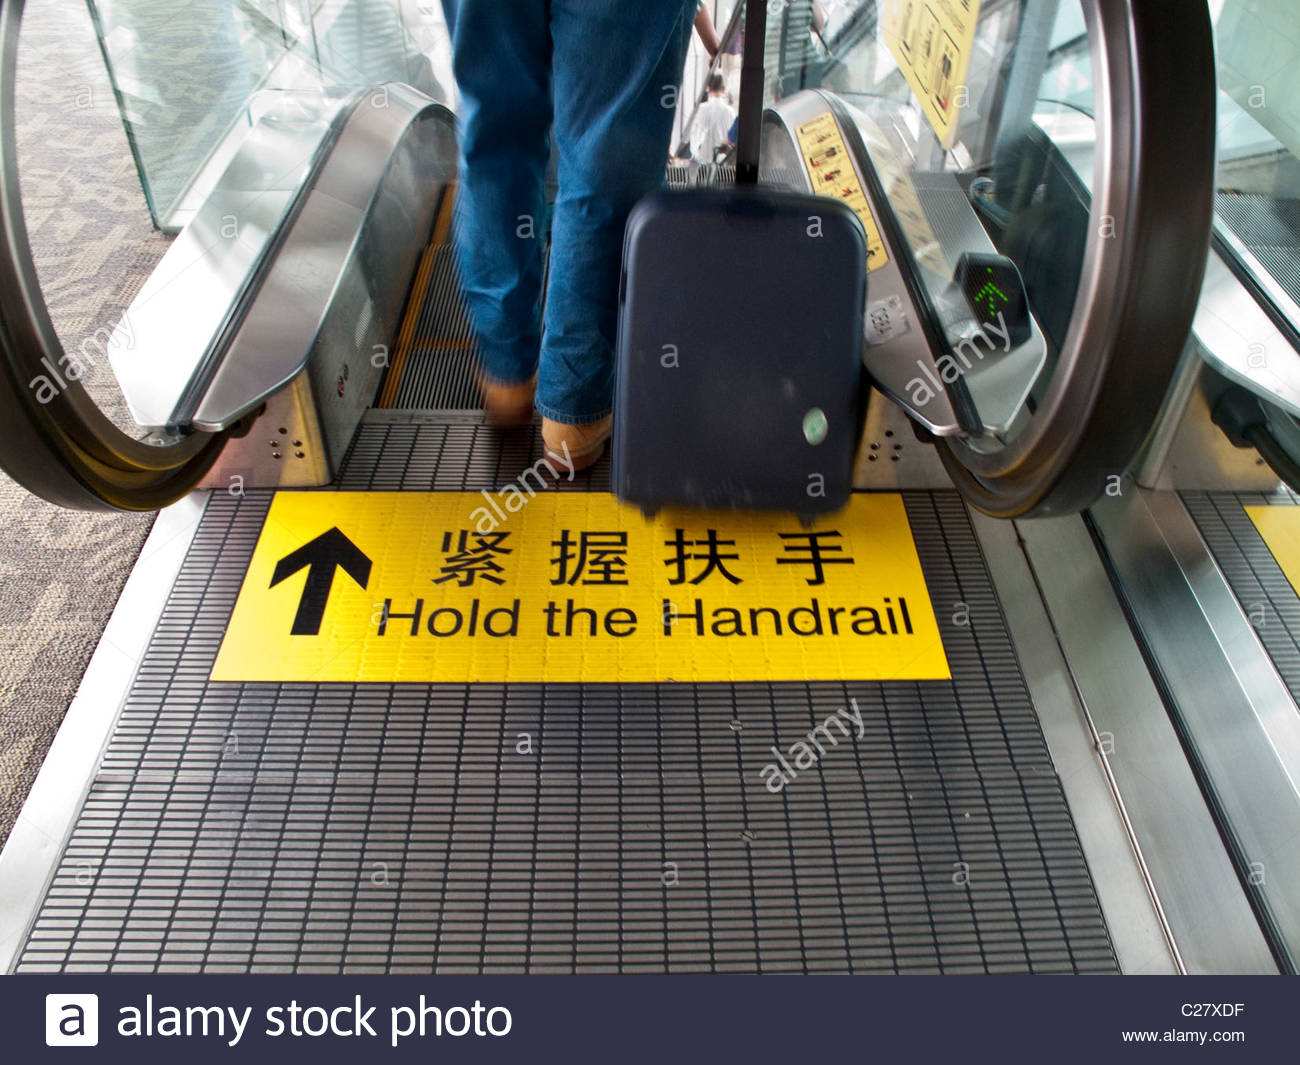 A 'hold the handrail' warning sign in English and Chinese. - Stock Image